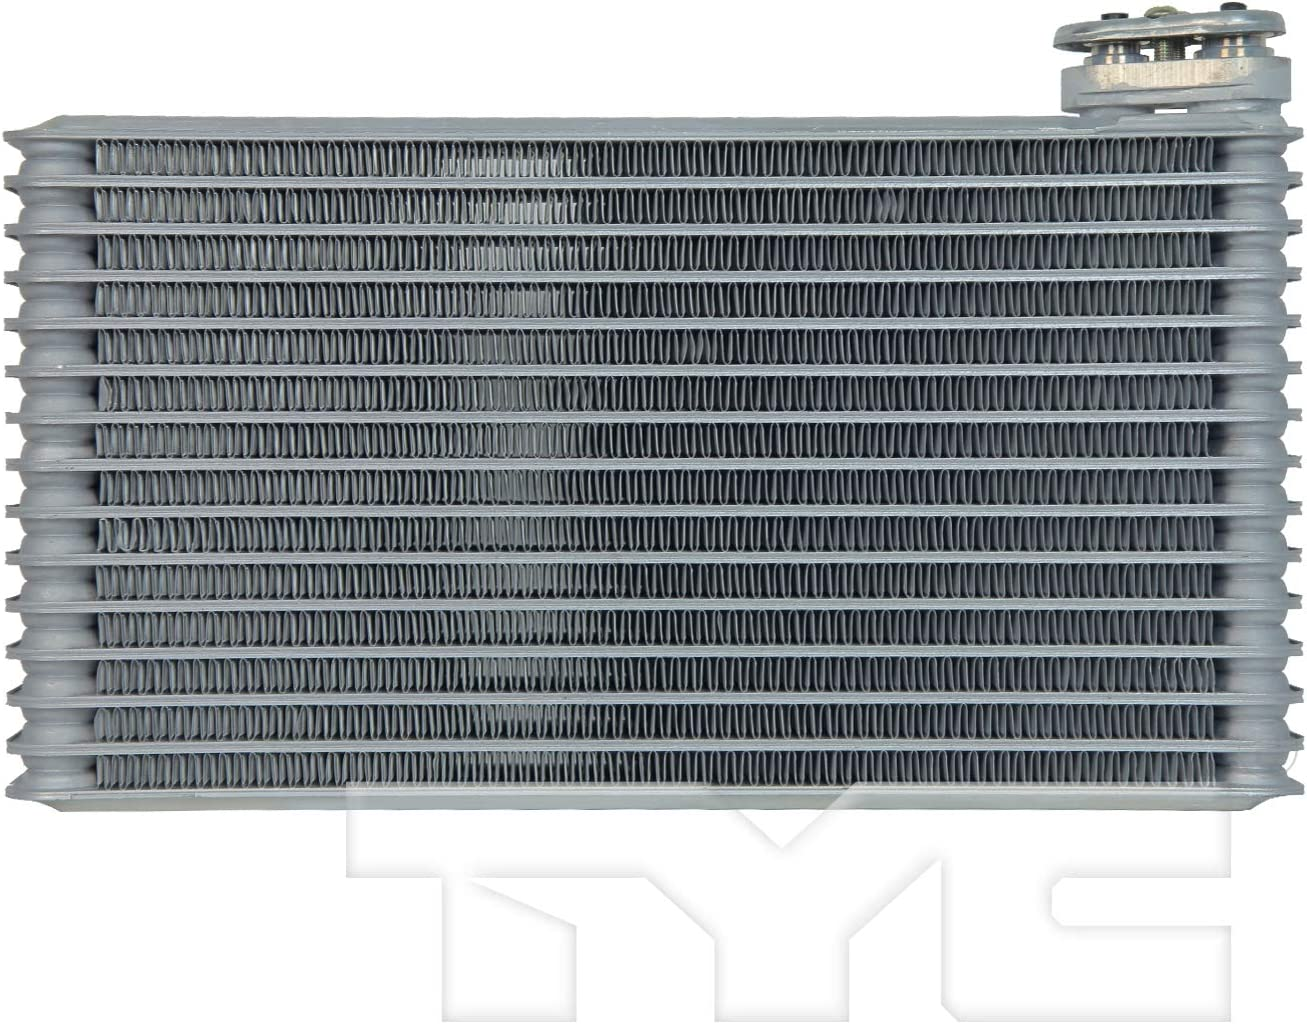 A//C Evaporator Core Compatible With Toyota Sienna 2004 2005 2006 2007 2008 2009 2010 Rear